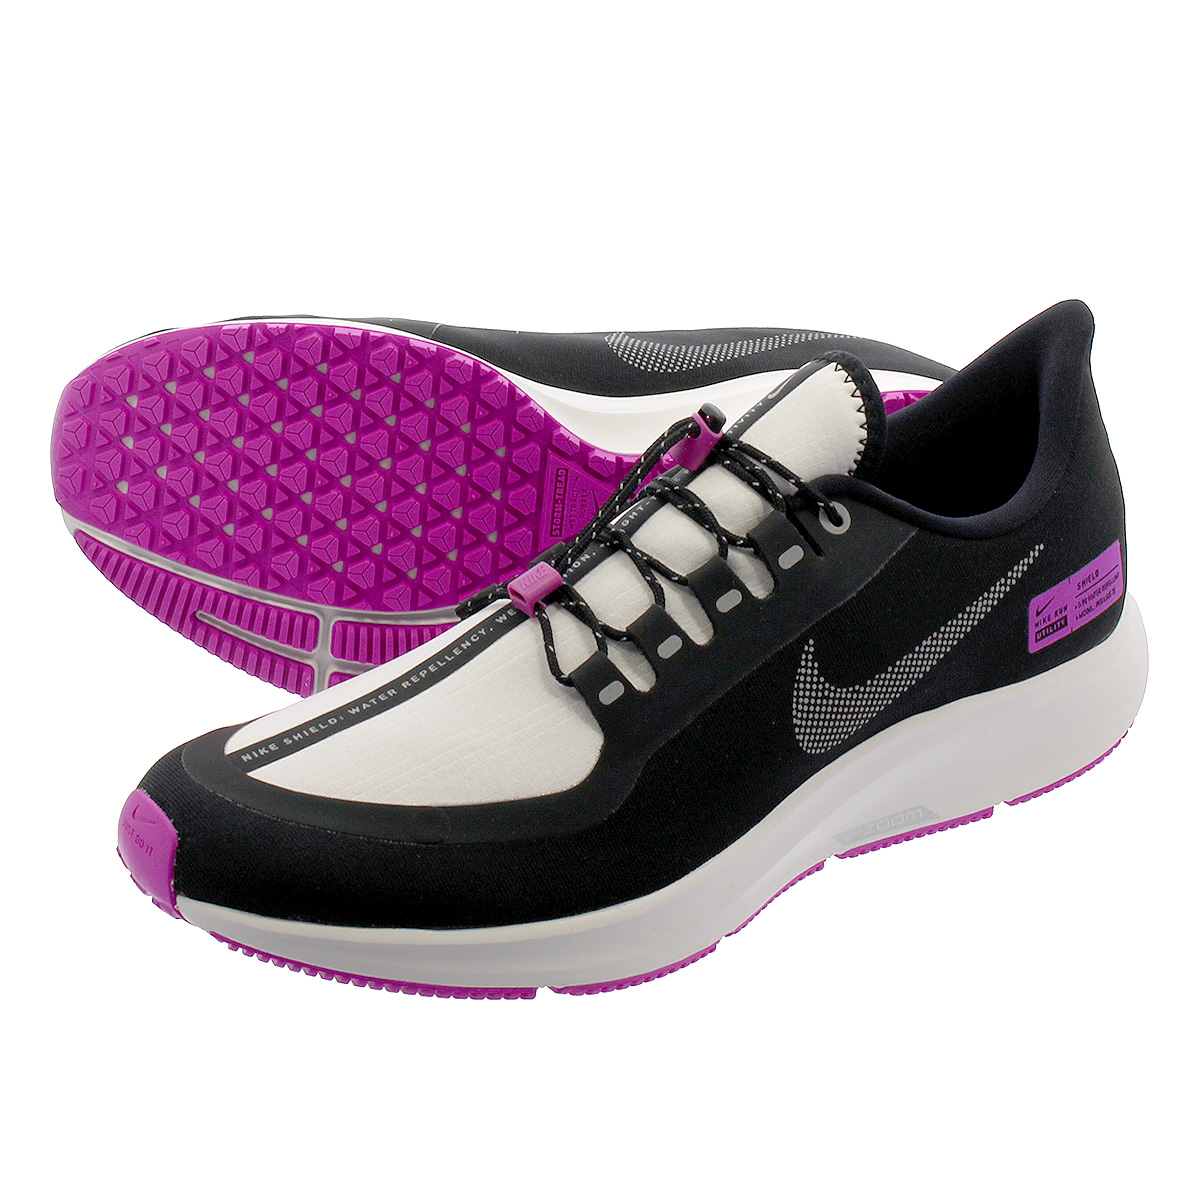 save off 60b22 4fddf NIKE AIR ZOOM PEGASUS 35 SHIELD NRG Nike air zoom Pegasus 35 shield NRG  BLK/REFLECT SILVER/VIOLET